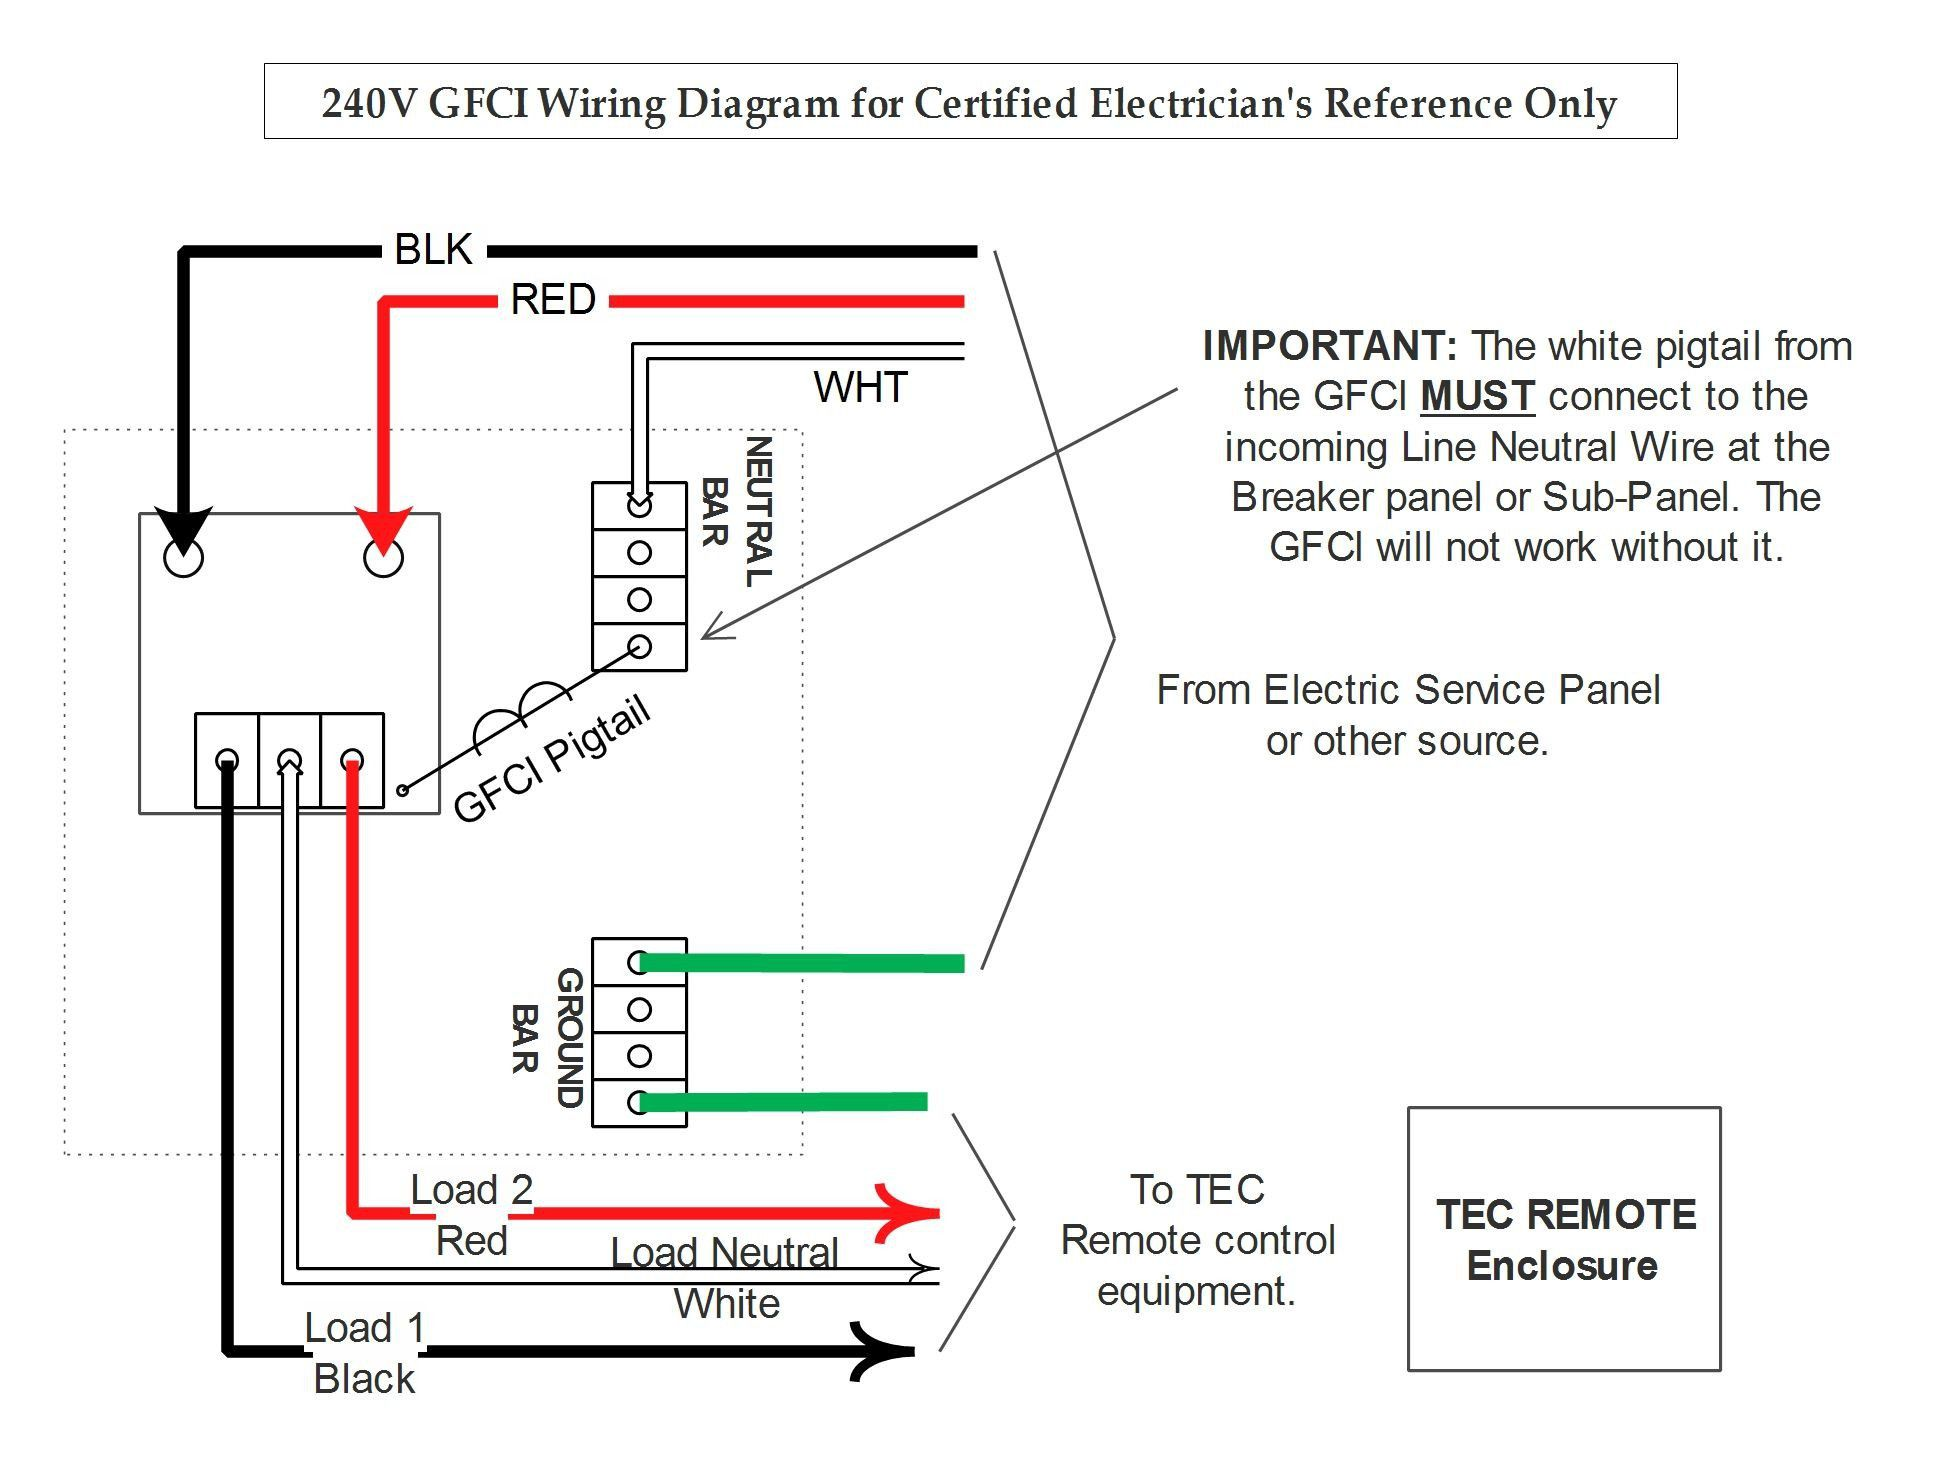 19 Stunning Circuit Breaker Wiring Diagram Https Bacamajalah Com 19 Stunning Circuit Breaker Wiring Diagram Diagram Electrical Wiring Diagram Car Lifts